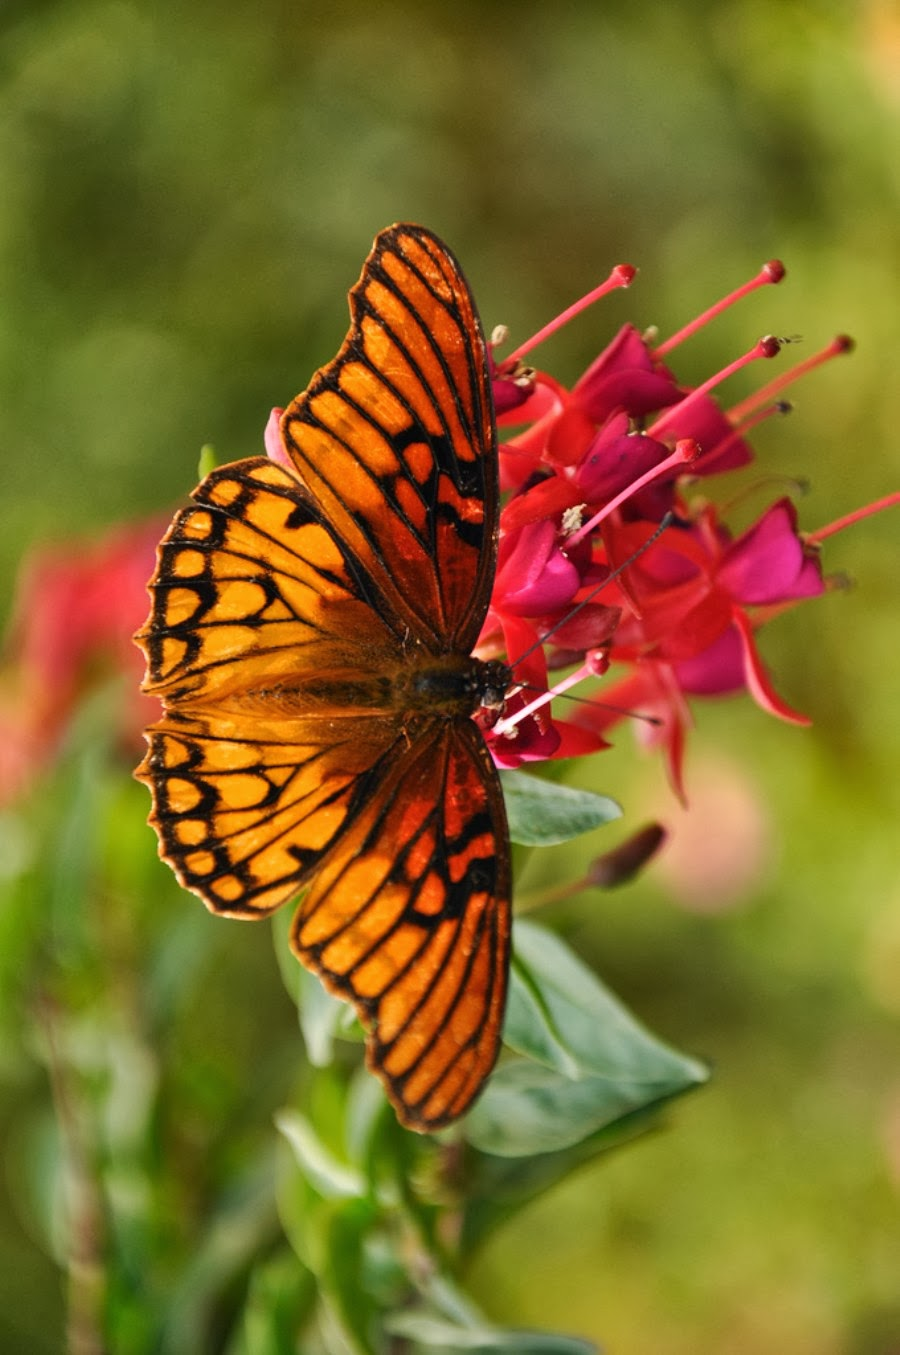 Mariposa Free Hd Wallpapers For Mobiles Hd Wallpaper